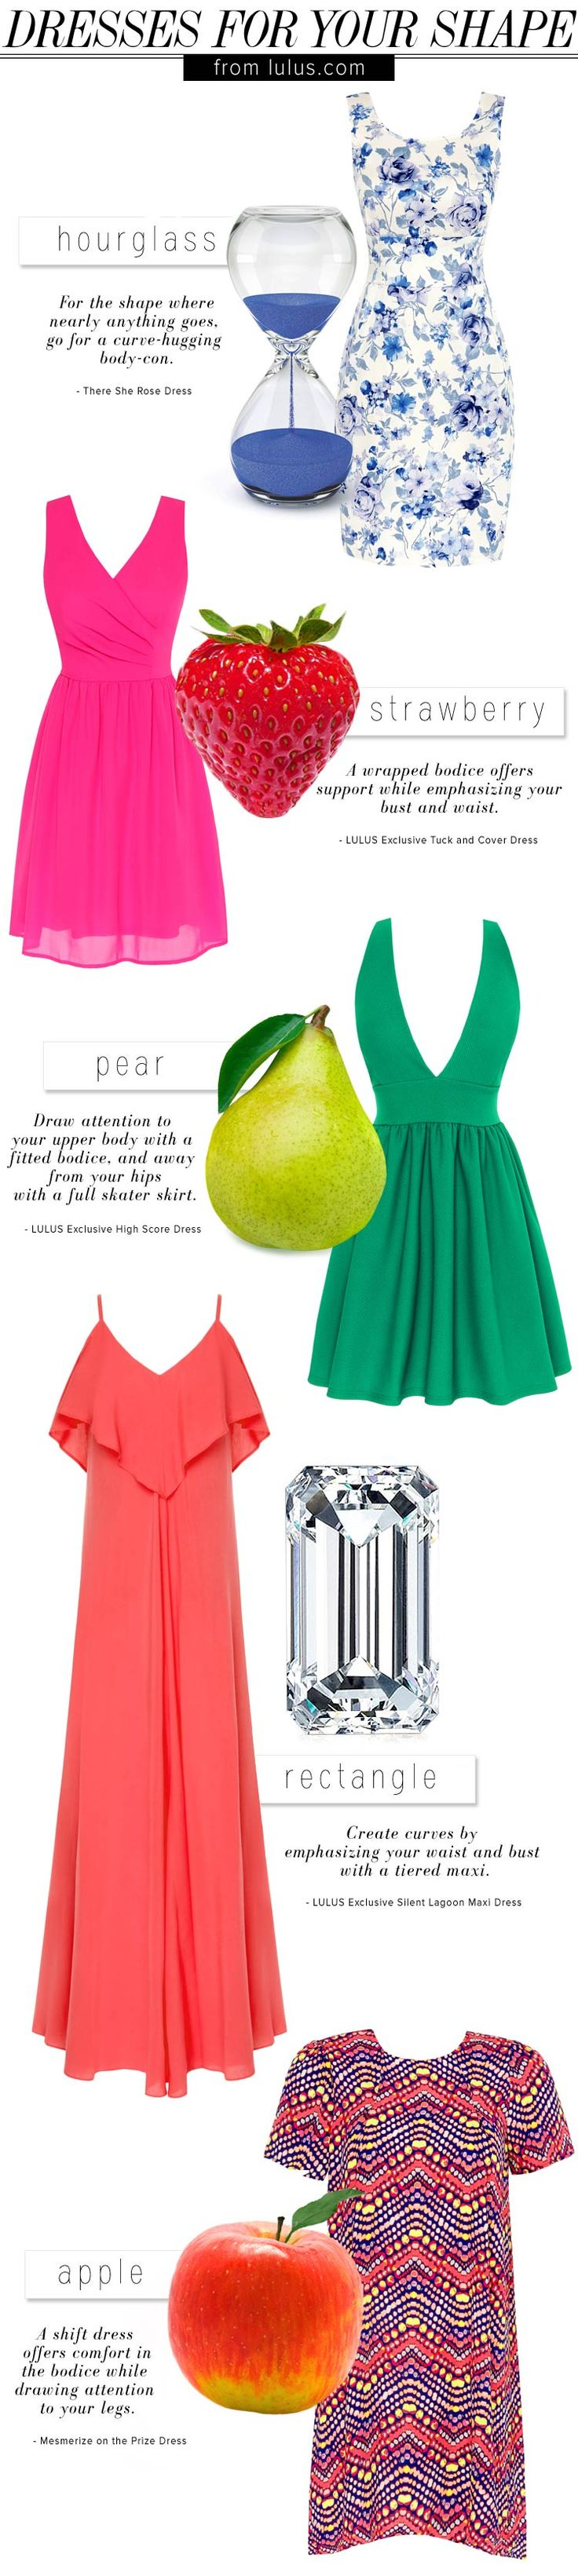 Dress for Your Shape at LuLus.com!